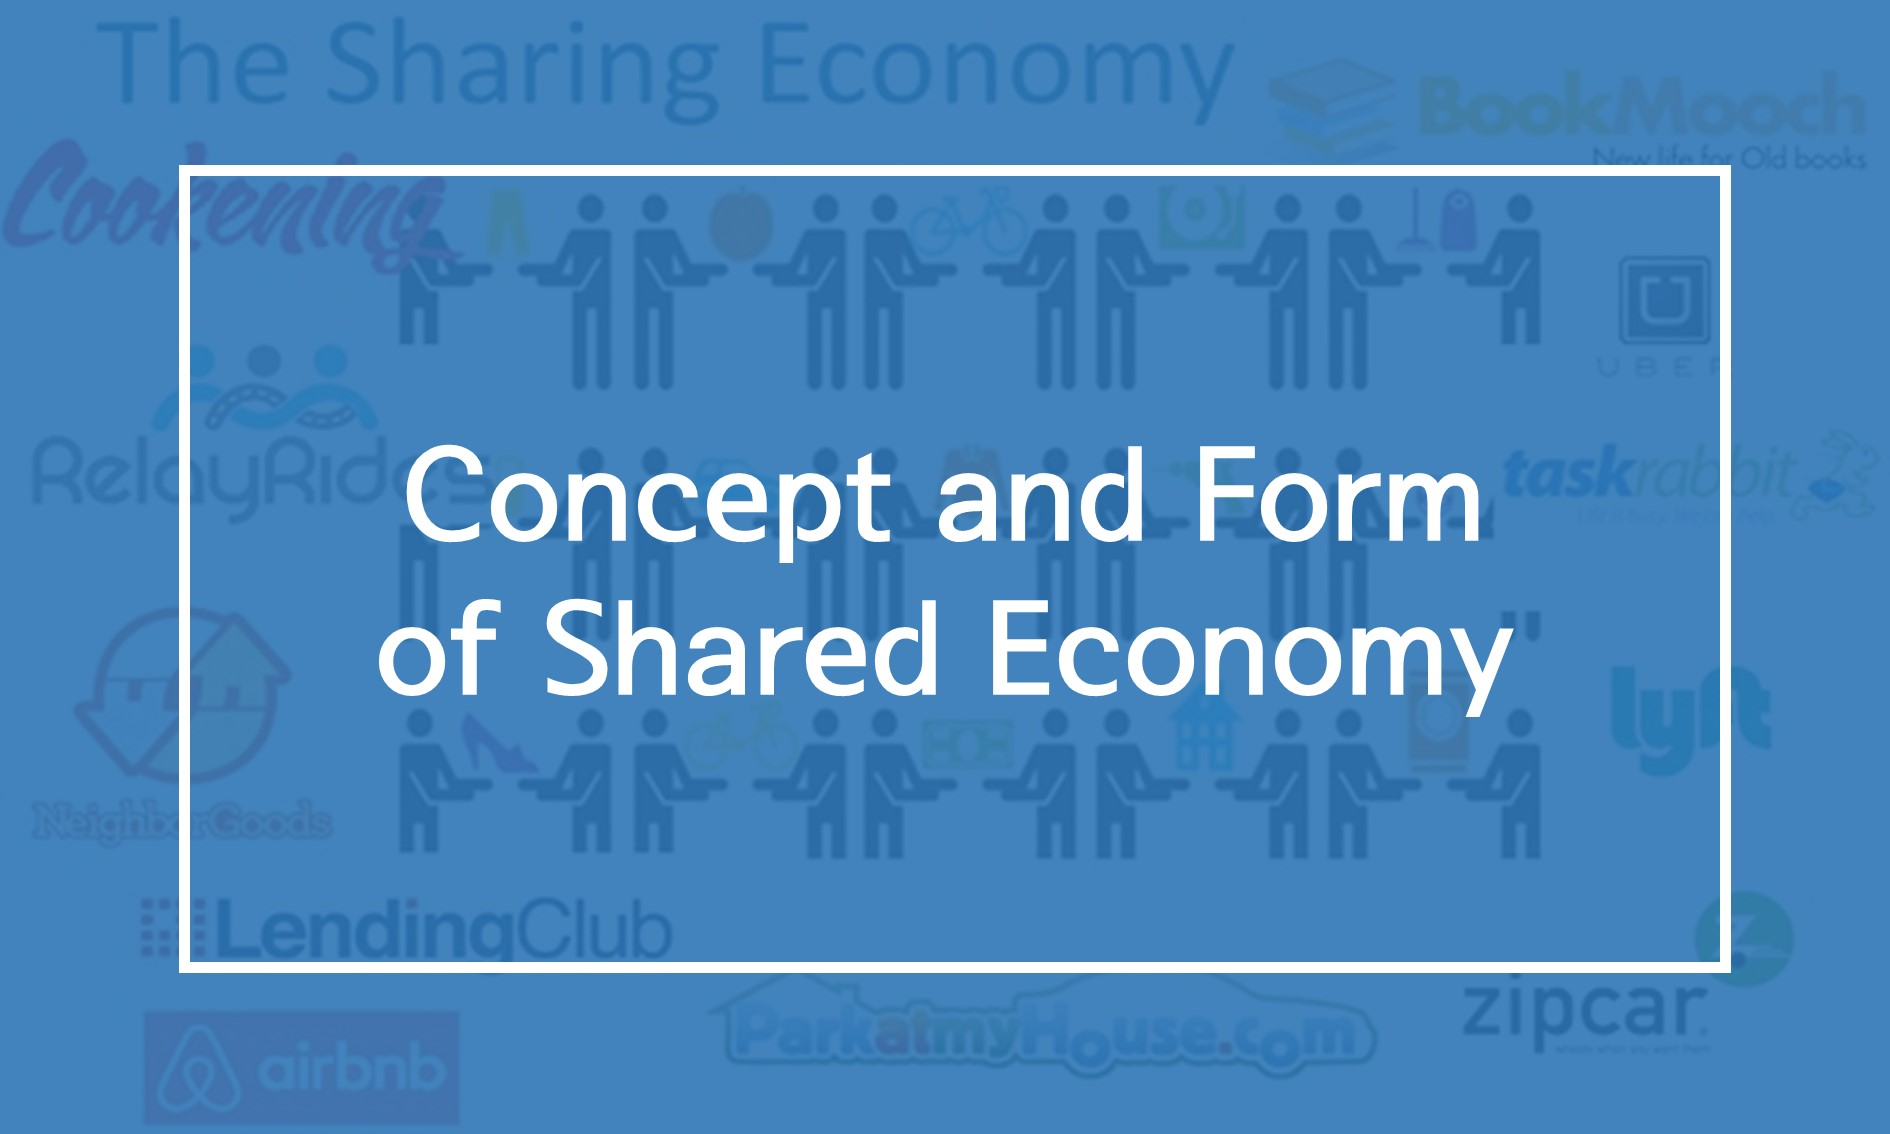 [Resources] Concept and Form of Shared Economy